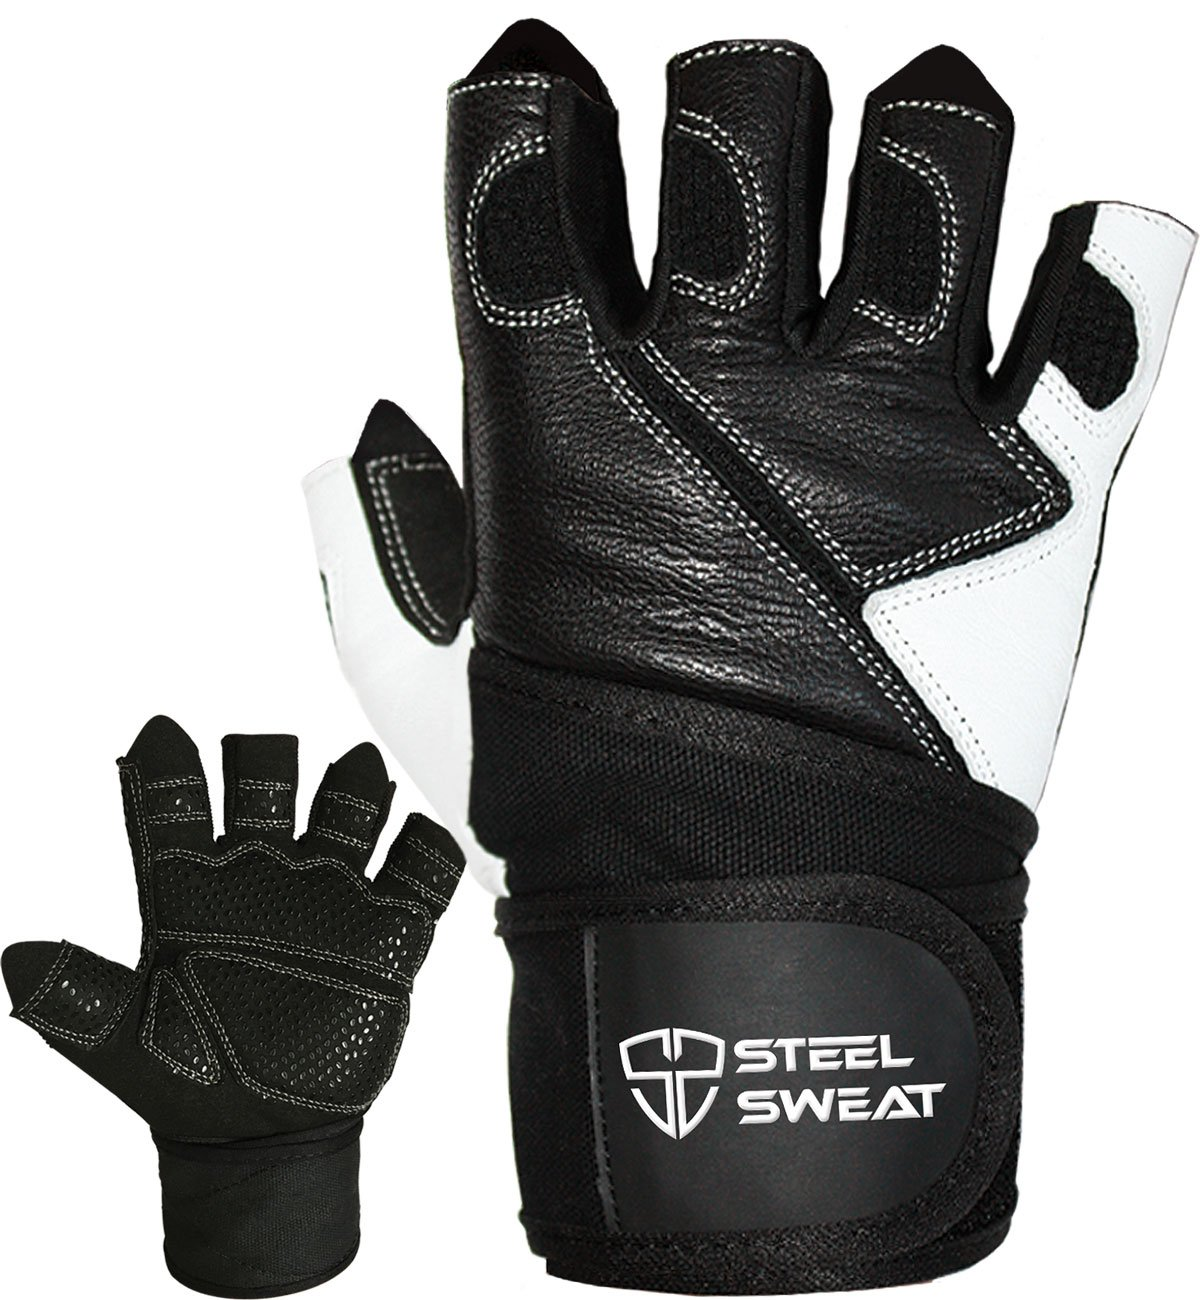 Steel Sweat Workout Gloves with over 18-inch Wrist Wrap Support